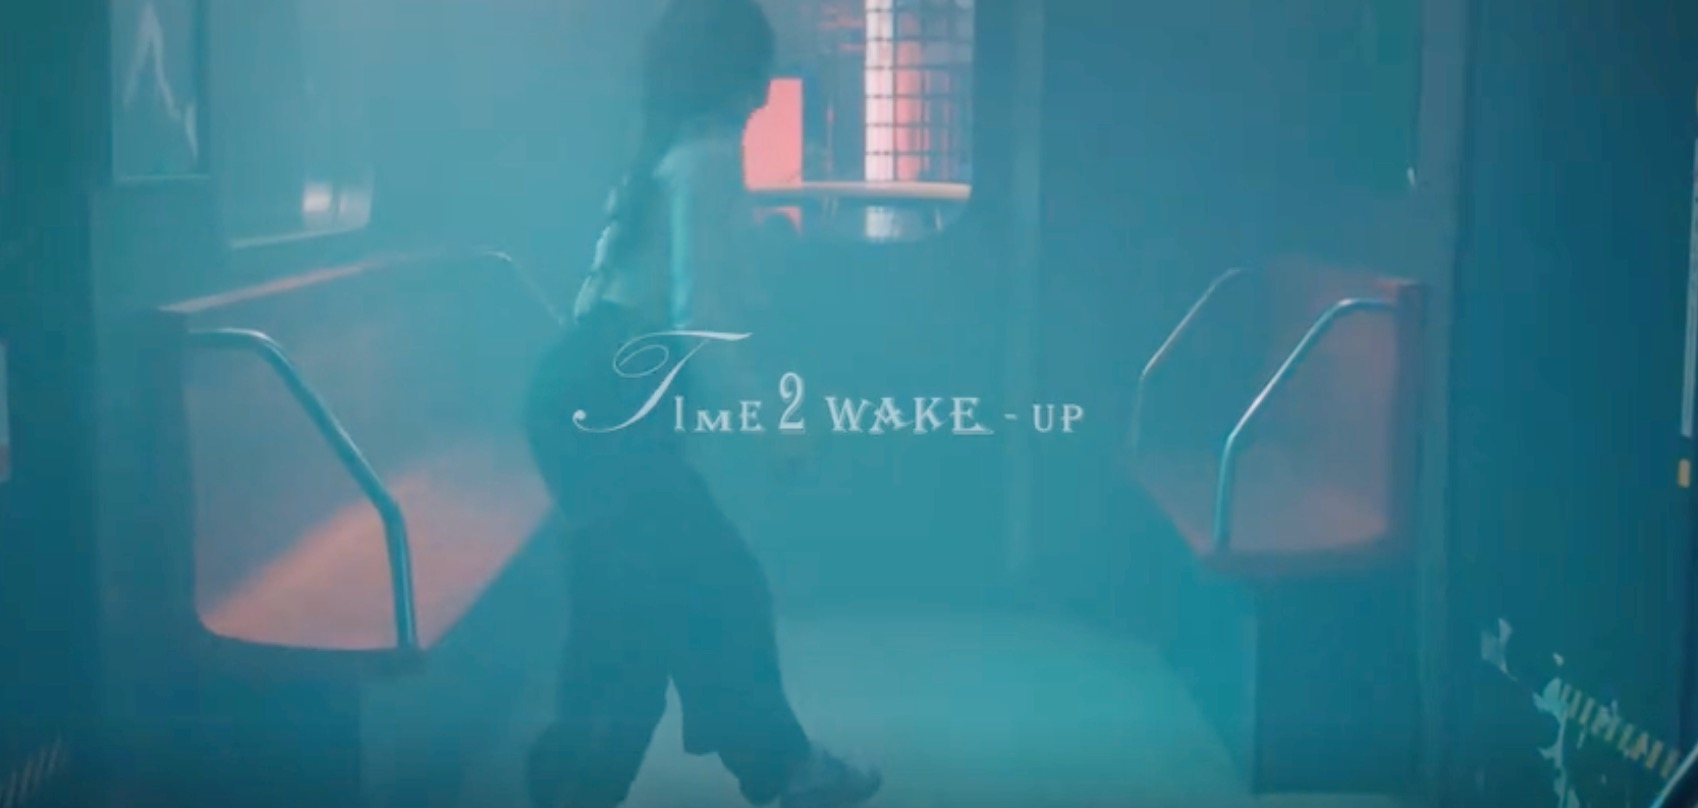 林小宅《Time2wake-up》舞蹈版MV